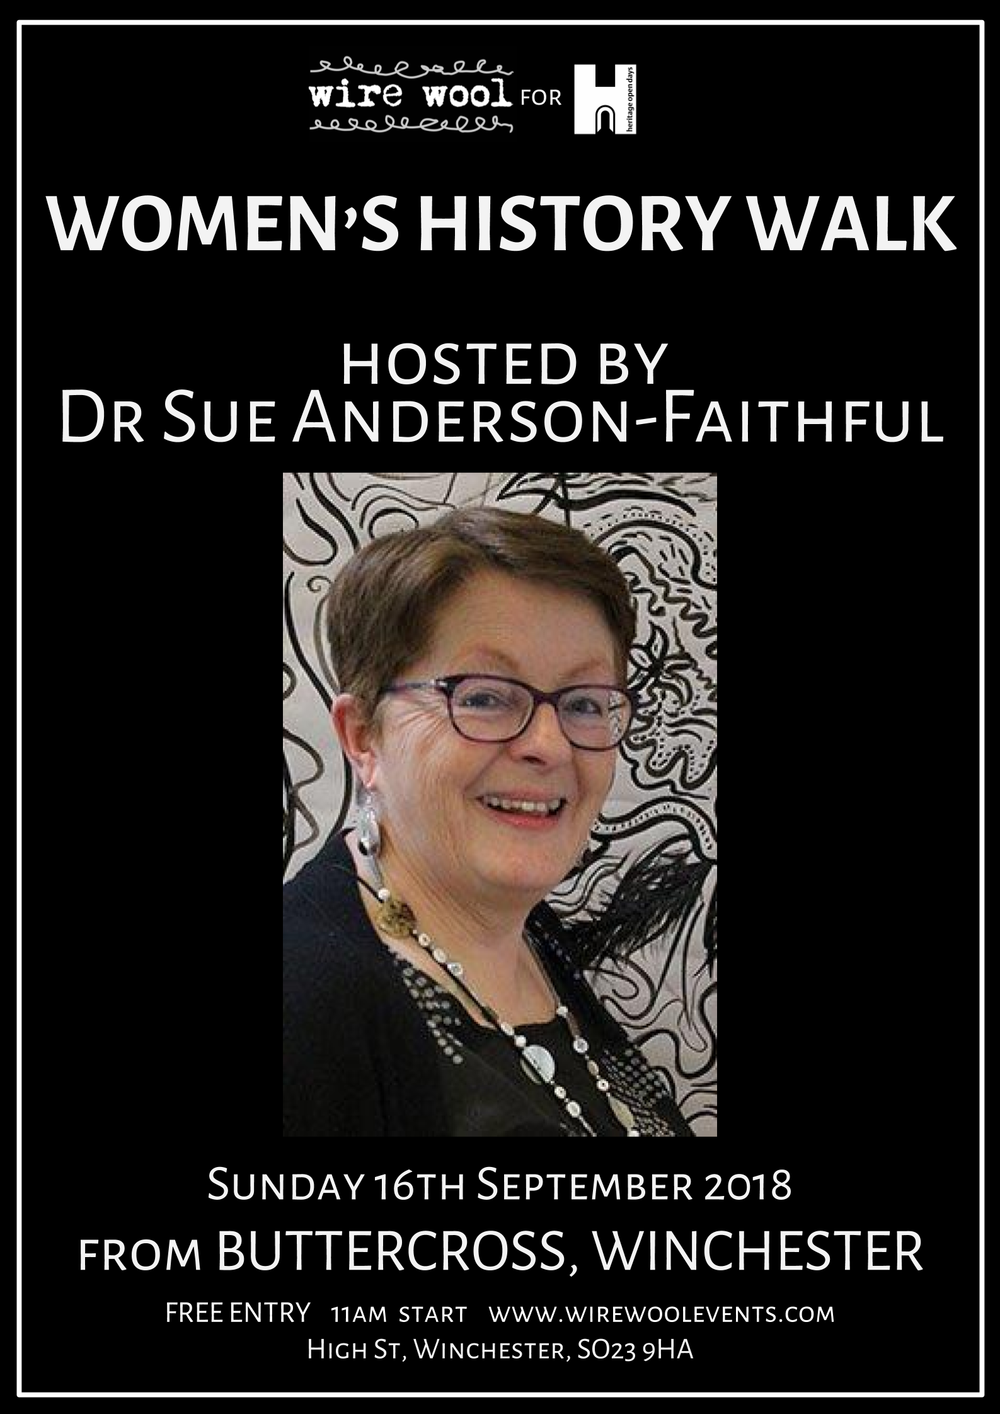 Women of Winchester: Historical Walk Sunday September 16 2018